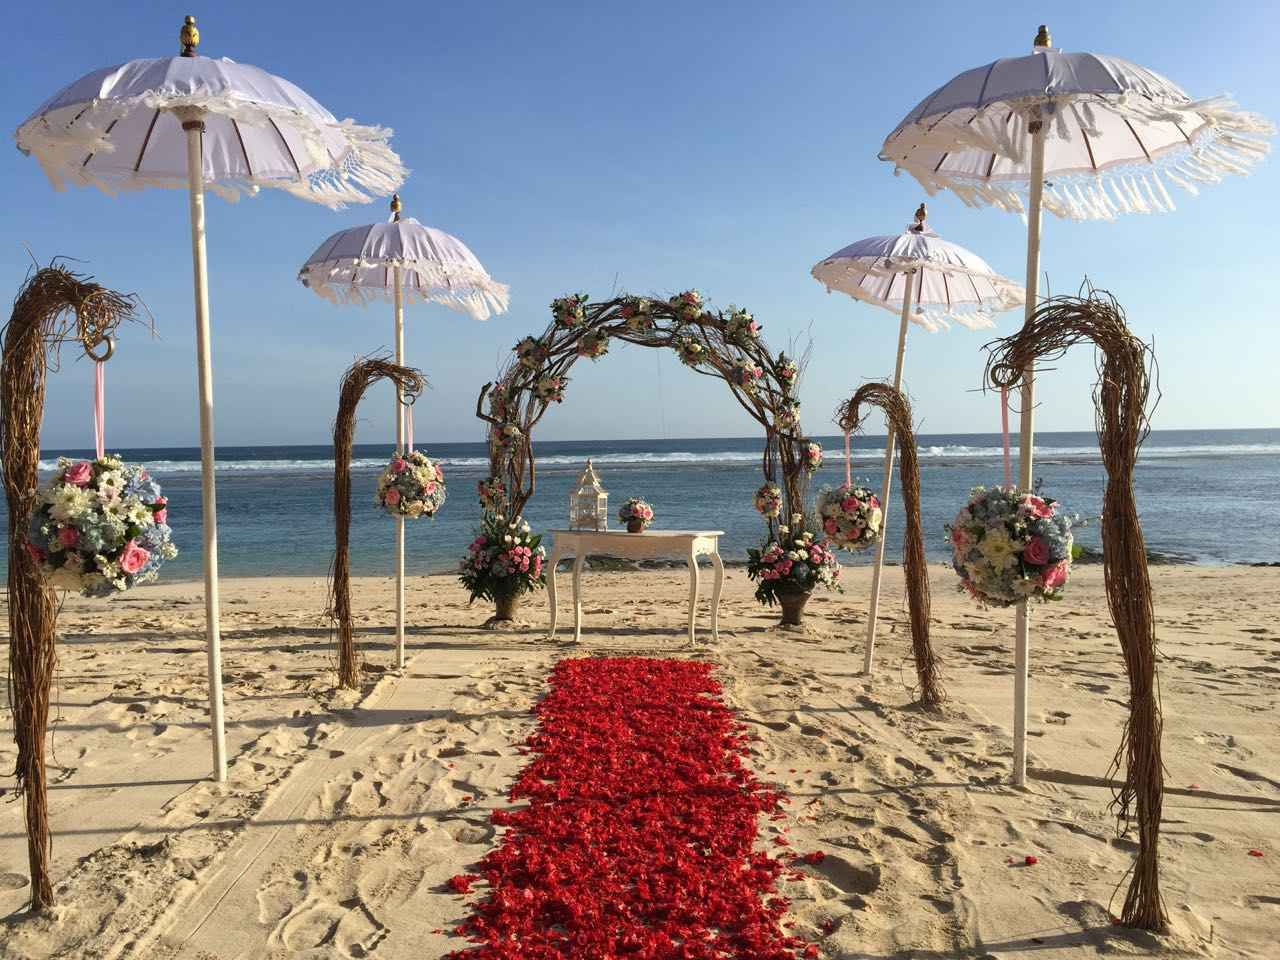 Bali wedding venues on the beach  Wedding at Basilico beach with full decoration Denpasar Indonesia